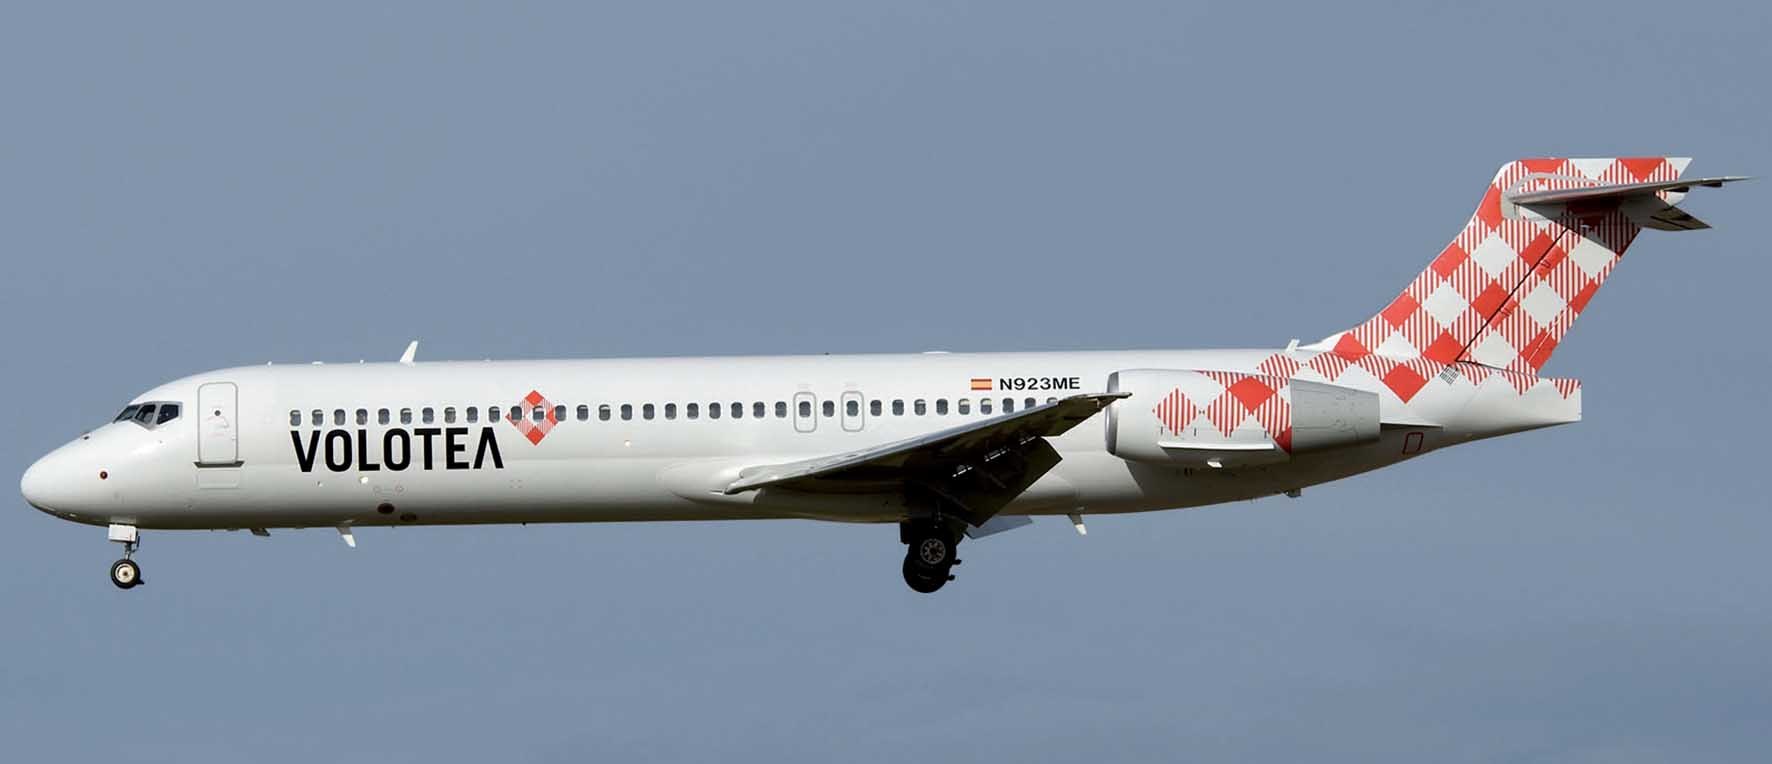 aereo volotea low cost-ilnordest-quotidiano